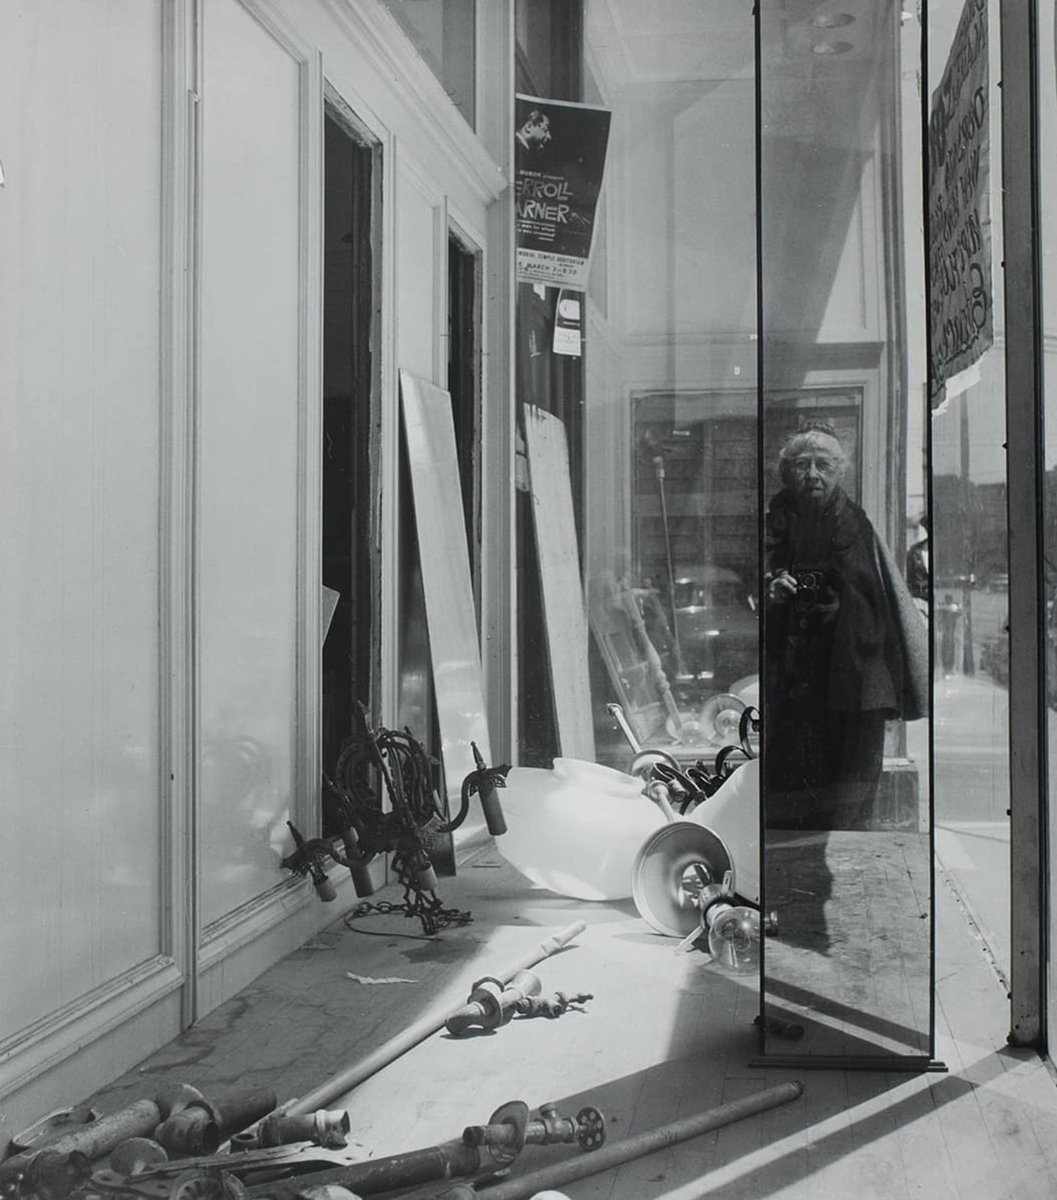 @alixbeeston Object Women - A history of women in photography by Alix Beeston, released March to May 2018. objectwomen (instagram) Imogen Cunningham, Self-portrait on Geary Street (1958). #GenderCrossroads18 @swwgender<br>http://pic.twitter.com/xOFDs7dQvi